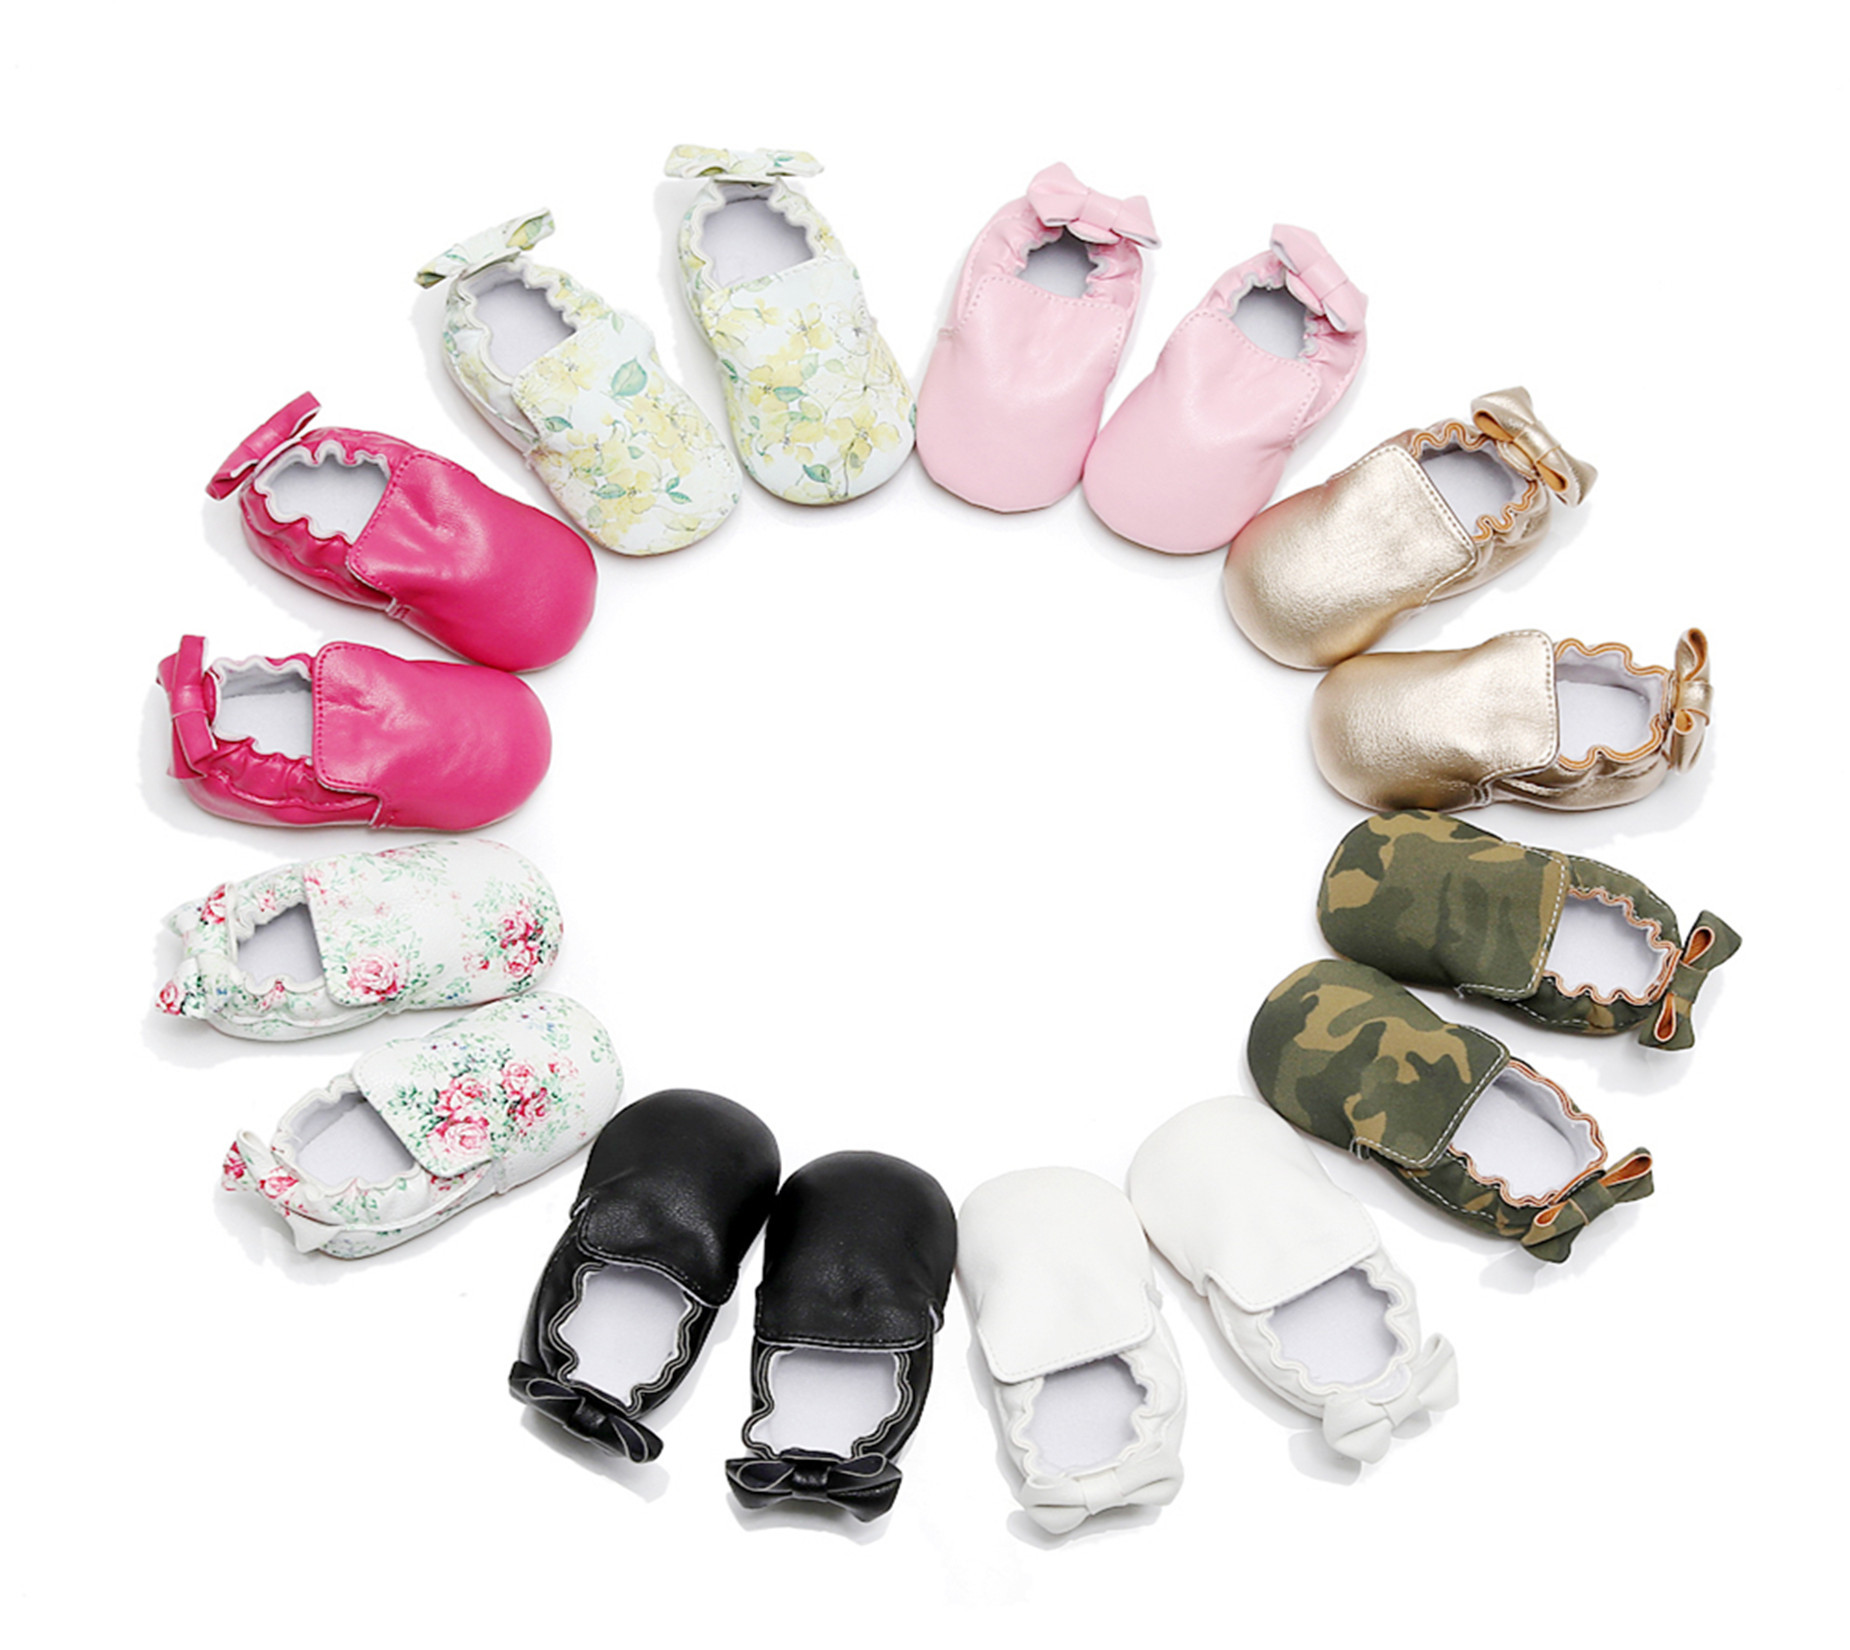 2018 Baby Shoes Colorful Butterfly Knot Infant Baby Toddler Shoes Europe and America Hot Baby Moccasins